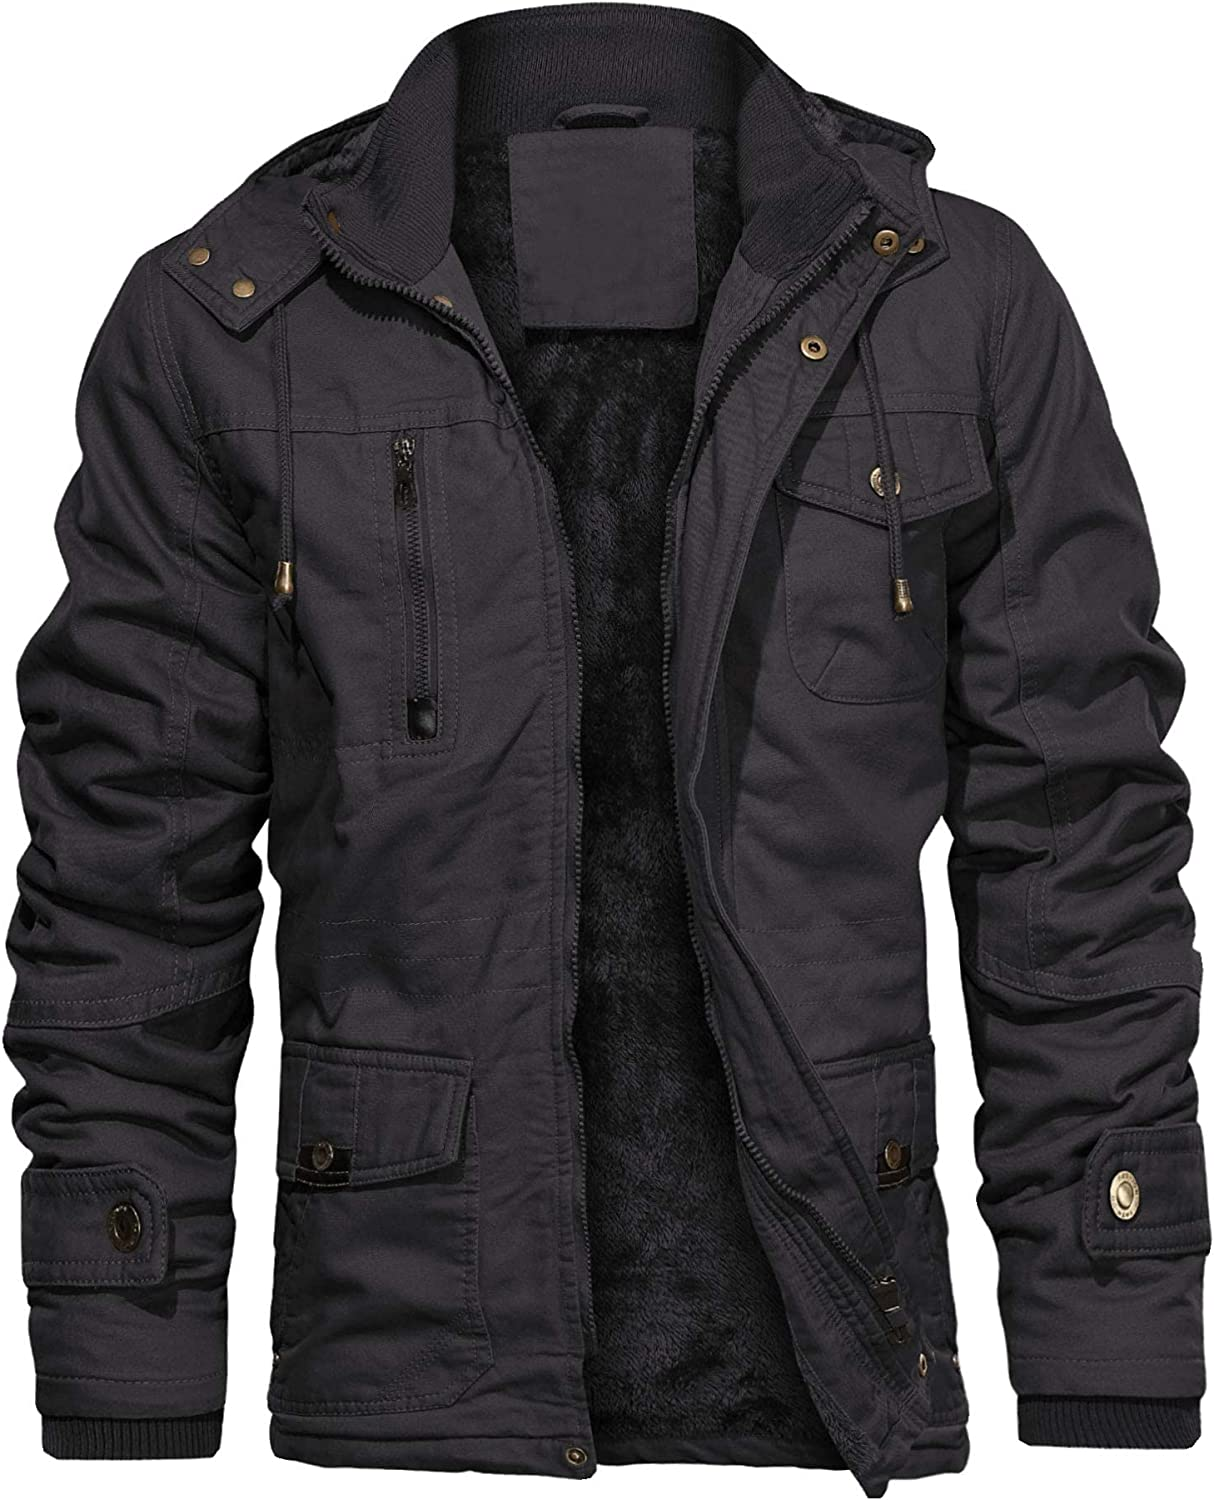 LEPOAR Men's Cotton Multi Pocket Stand Collar Canvas Work Coats Windbreaker Military Thicken Removable Hood Jacket